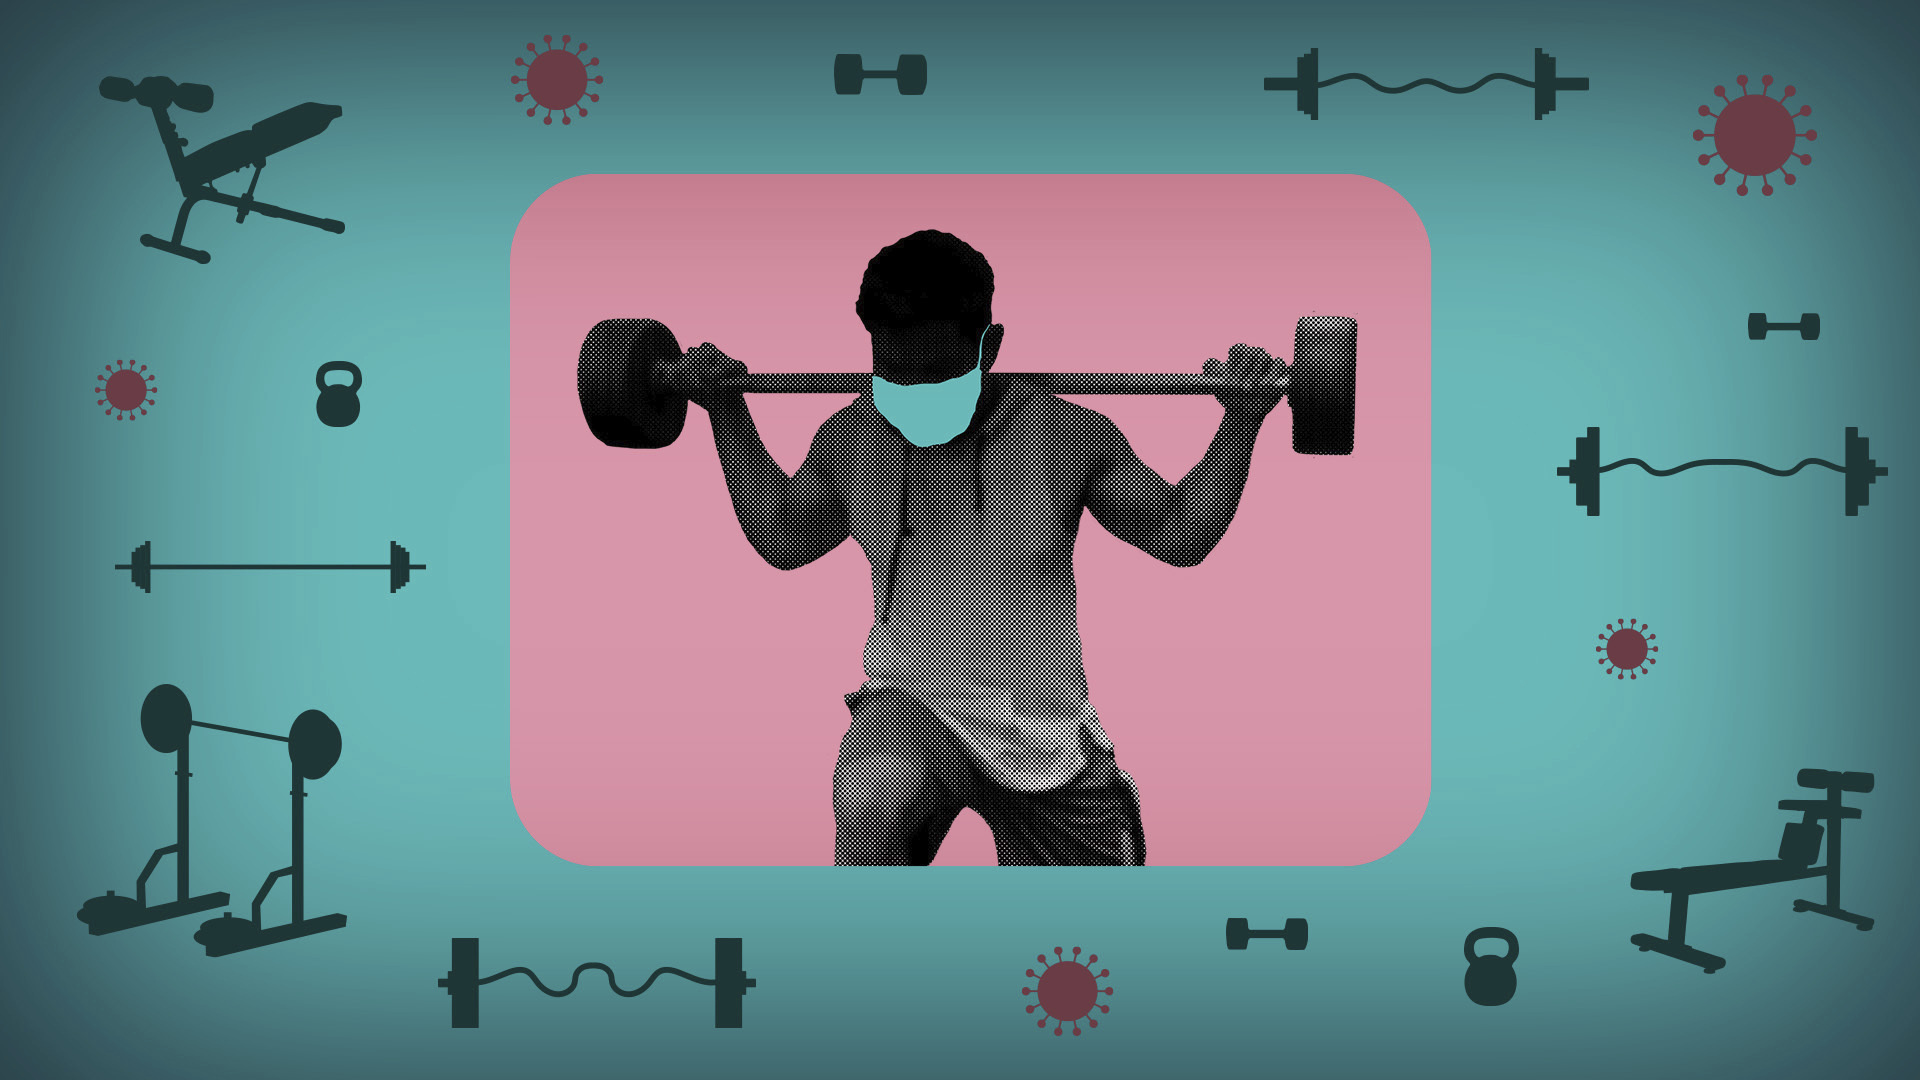 VIRUS OUTBREAK VIRAL QUESTIONS GYMS